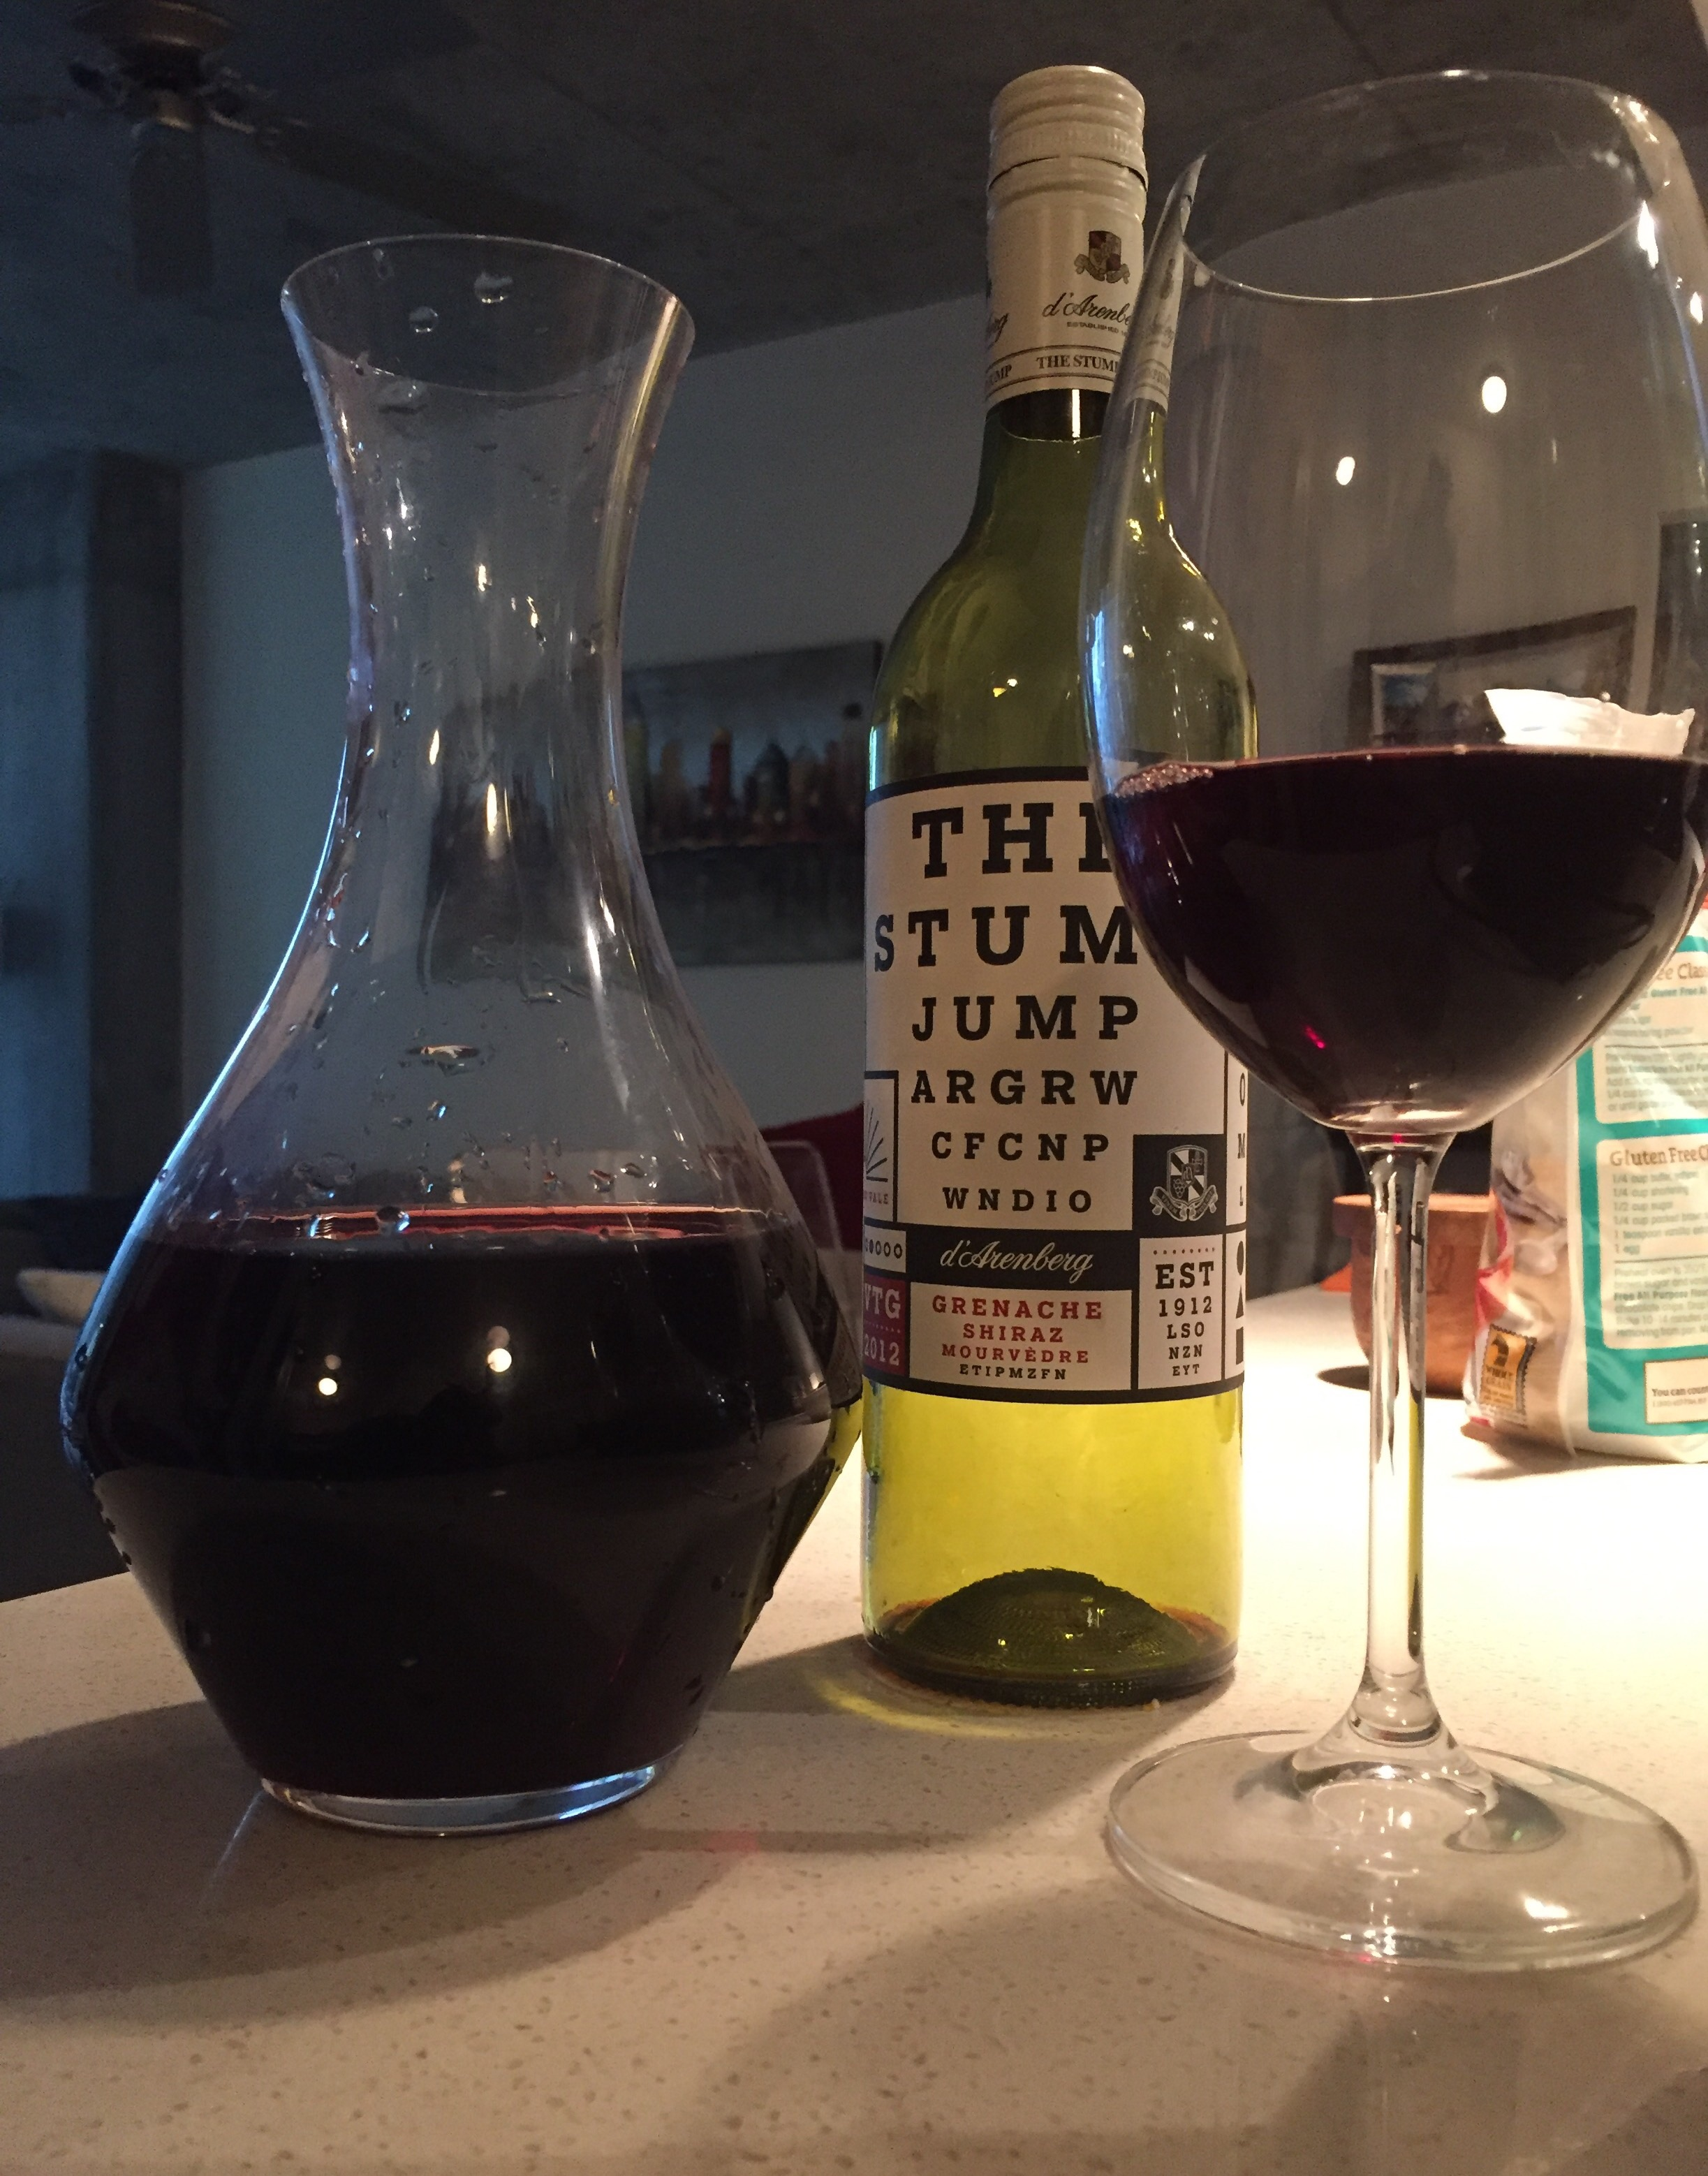 92 Wine Spectator points demanded a decanter.